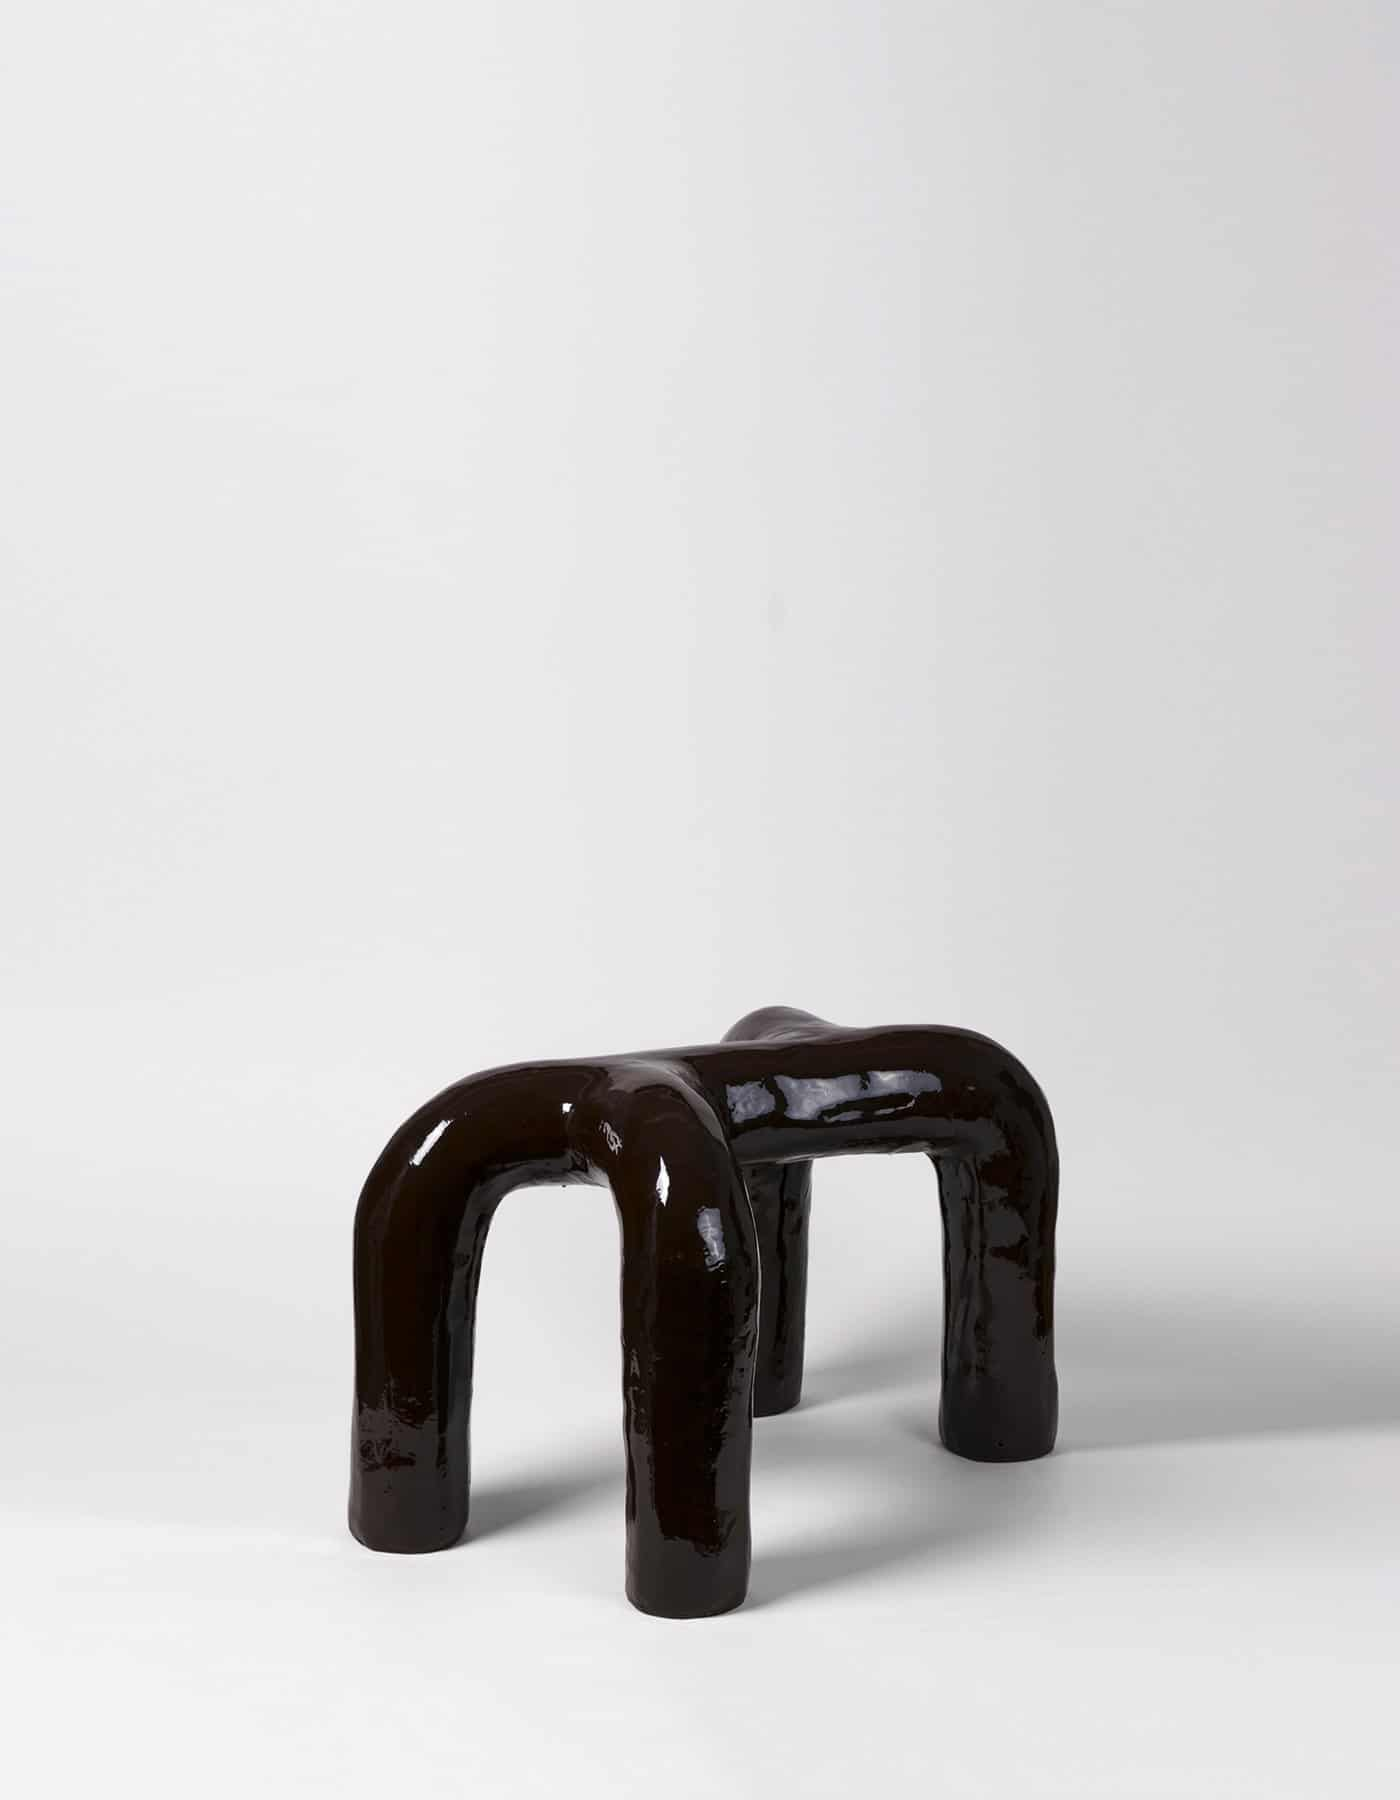 Collectible 2020, Simon Déliot for Huskdesignblog